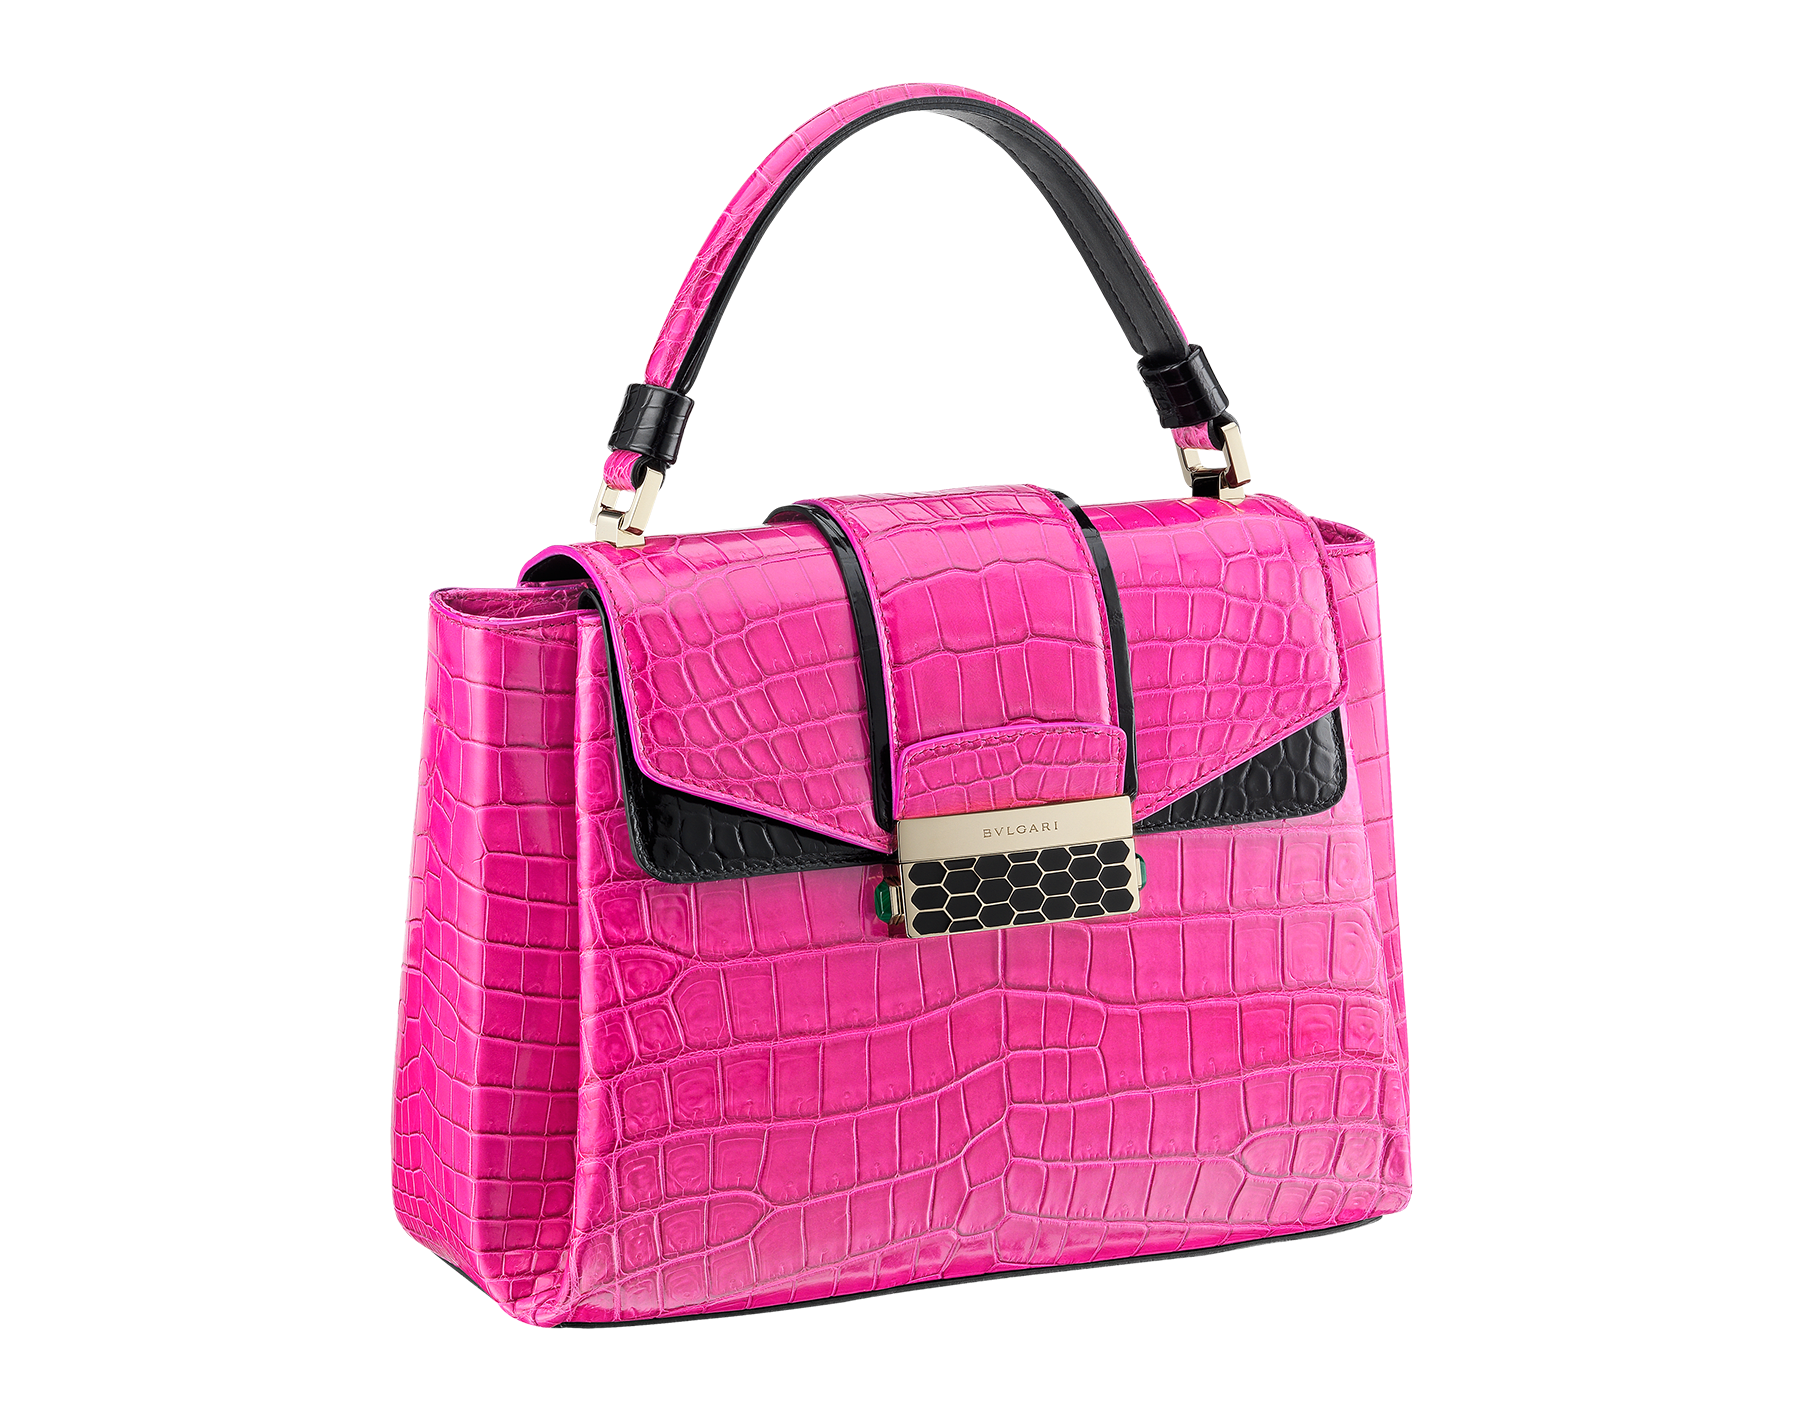 Top handle bag Serpenti Viper in pink spinel and black shiny crocodile skin. 283336 image 2